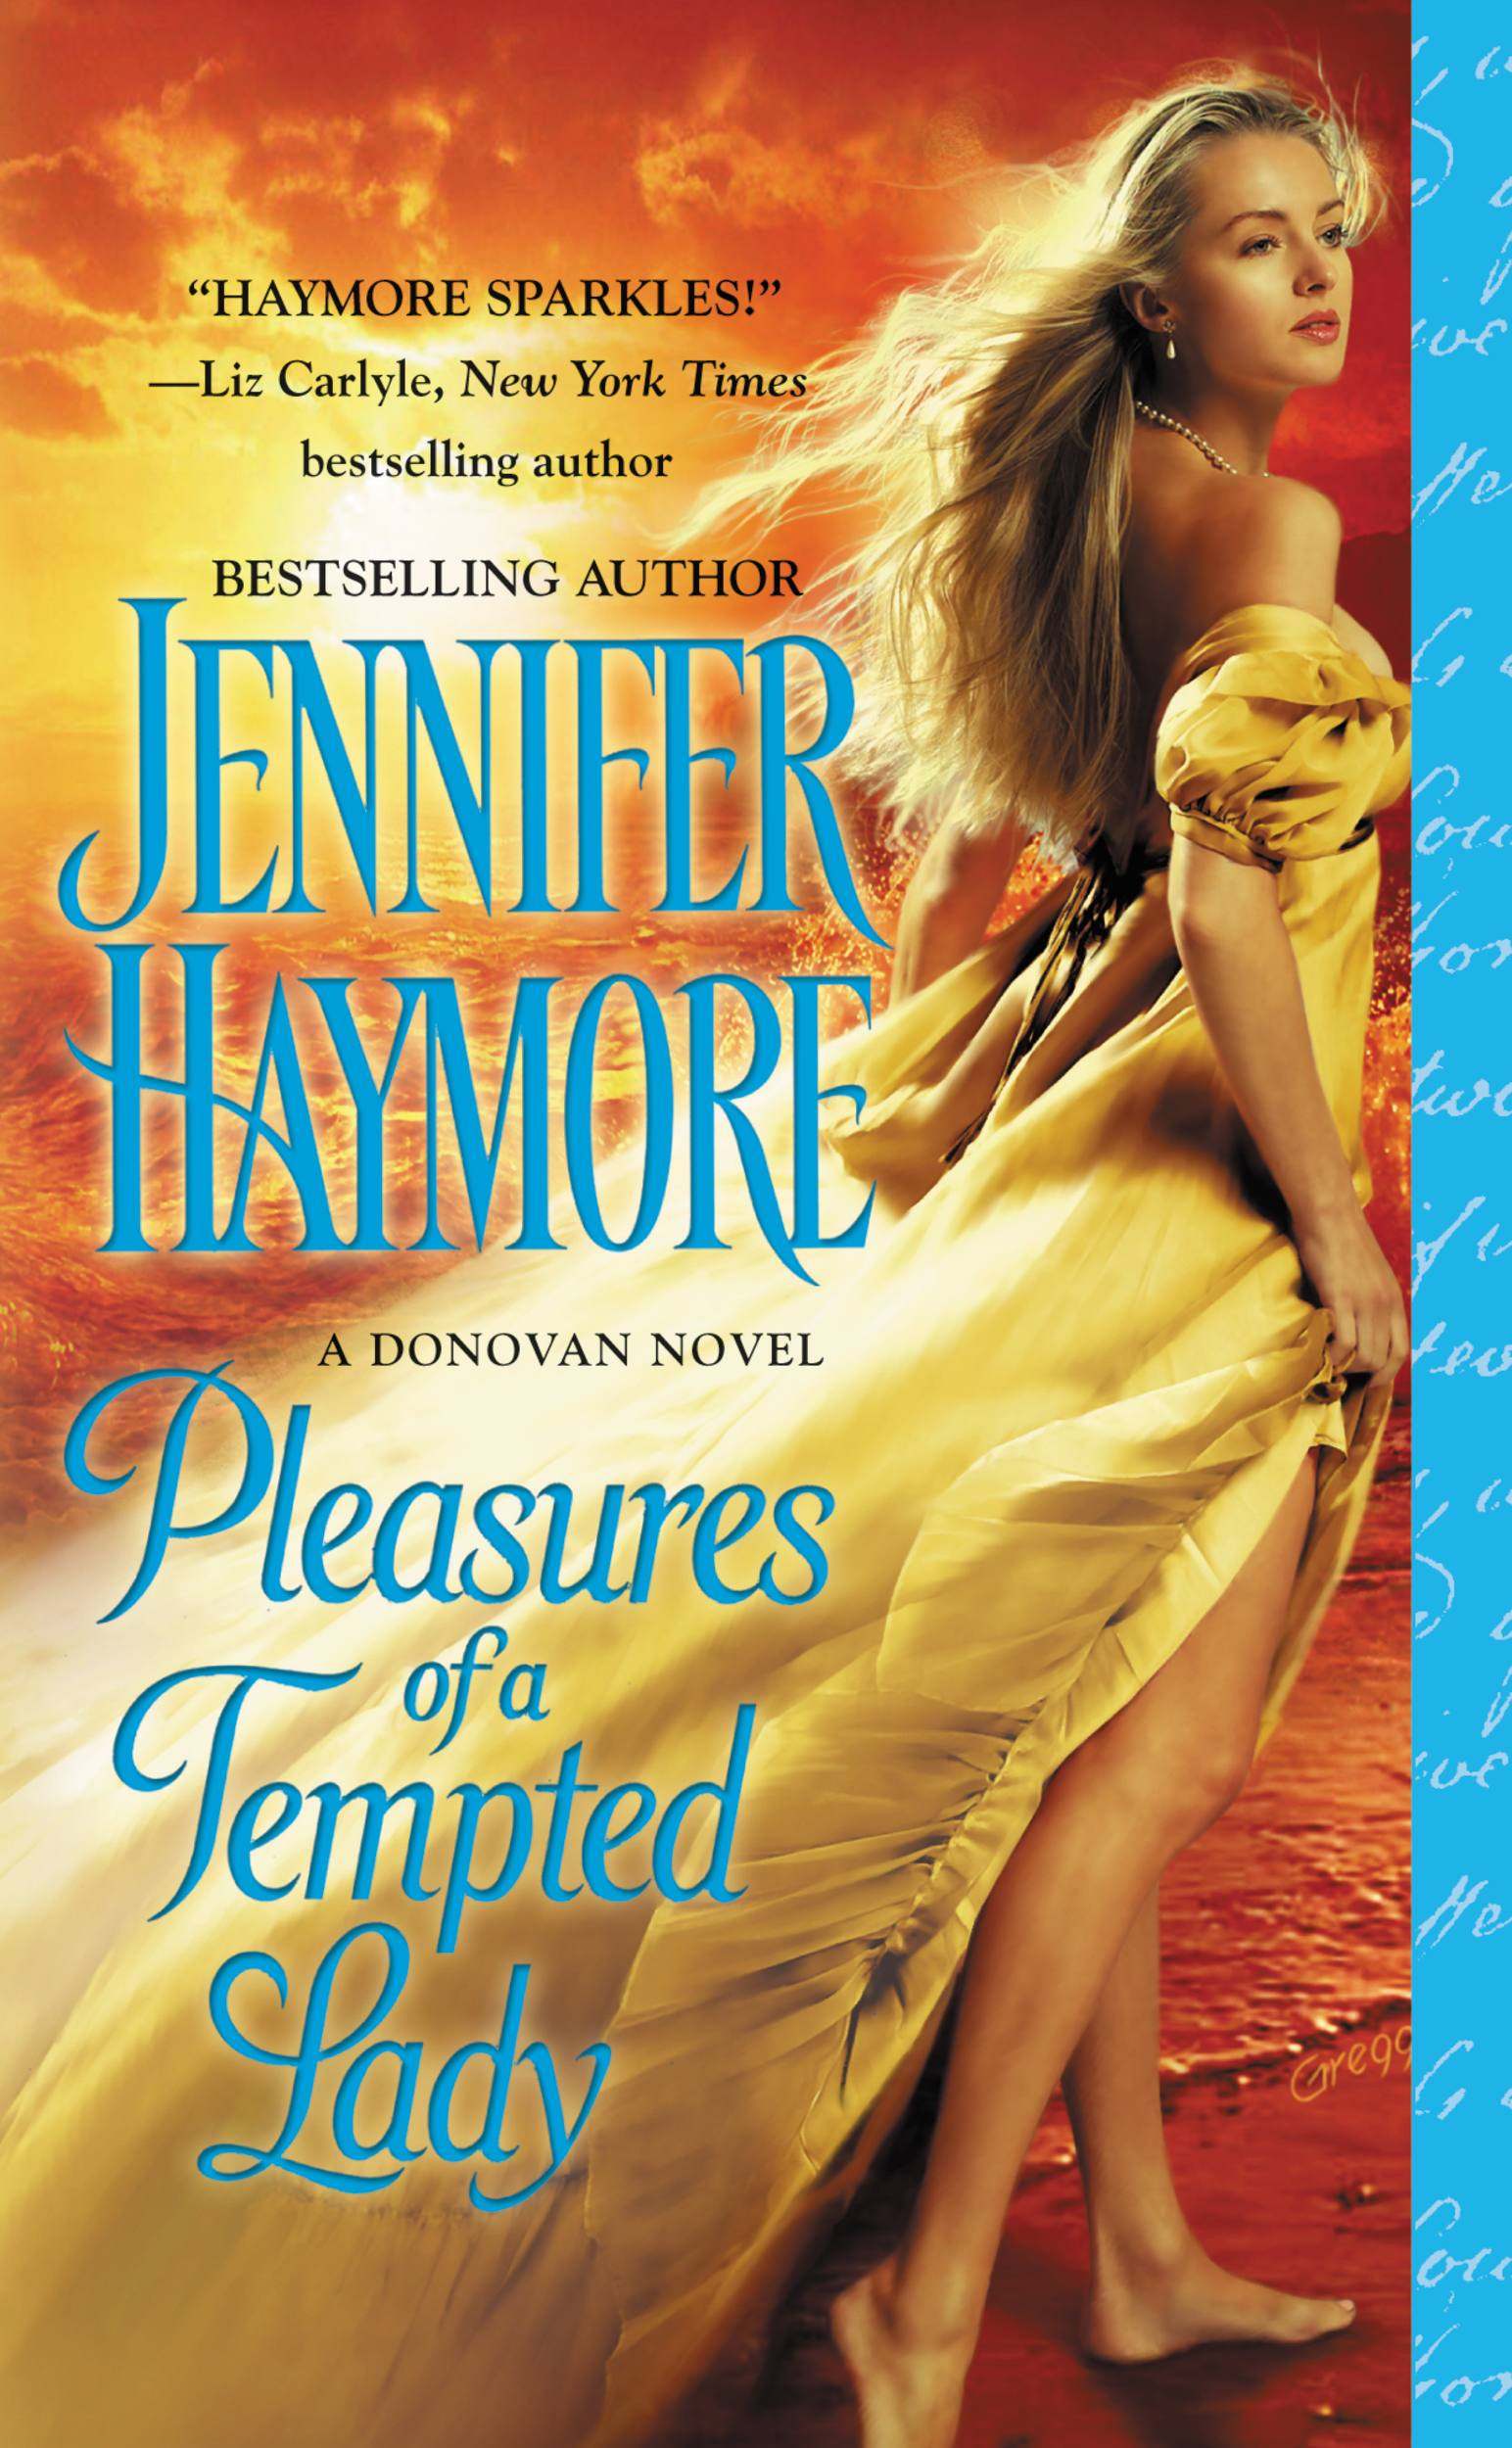 Pleasures of a Tempted Lady By: Jennifer Haymore